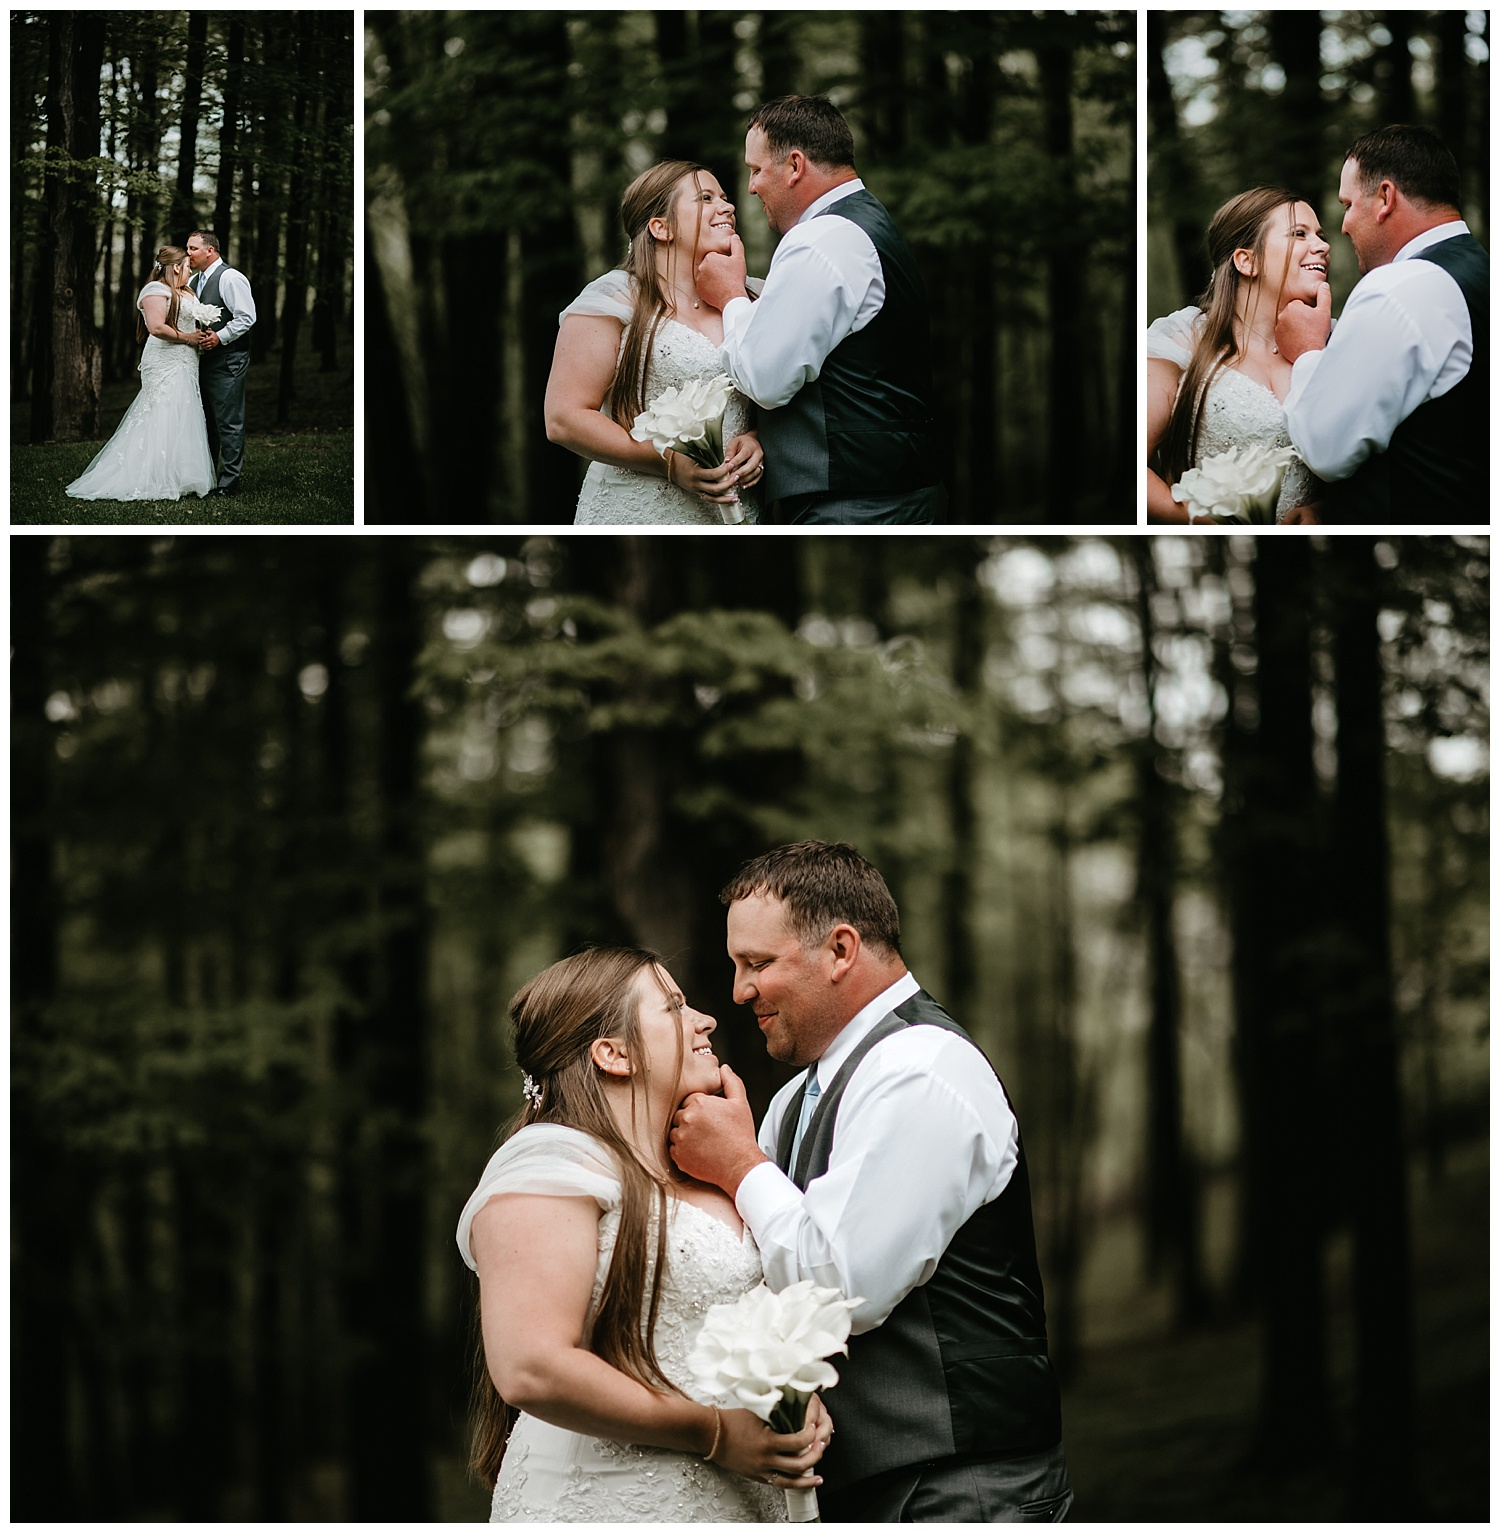 NEPA-wedding-photographer-at-the-Stroudsmoor-Country-Inn-Stroudsburg-PA_0016.jpg